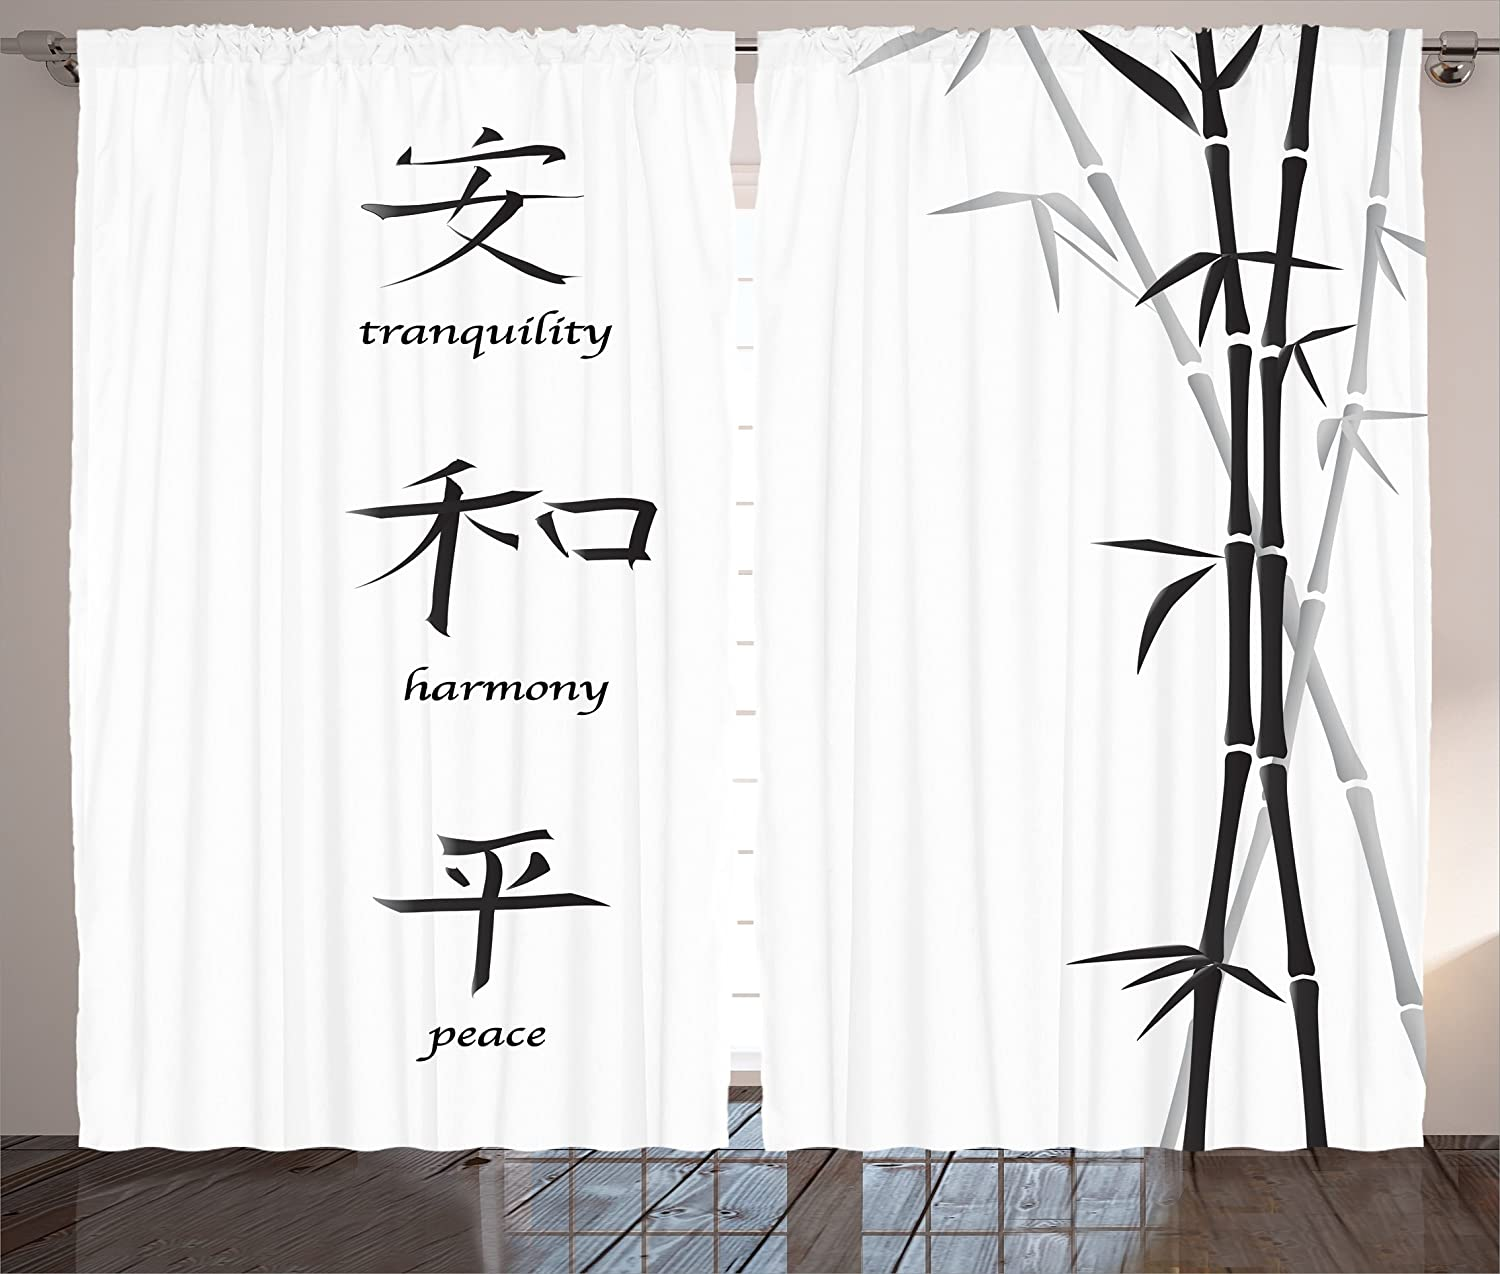 Ambesonne Bamboo Curtains, Illustration of Chinese for Tranquility Harmony Peace with Bamboo Pattern, Living Room Bedroom Window Drapes 2 Panel Set, 108